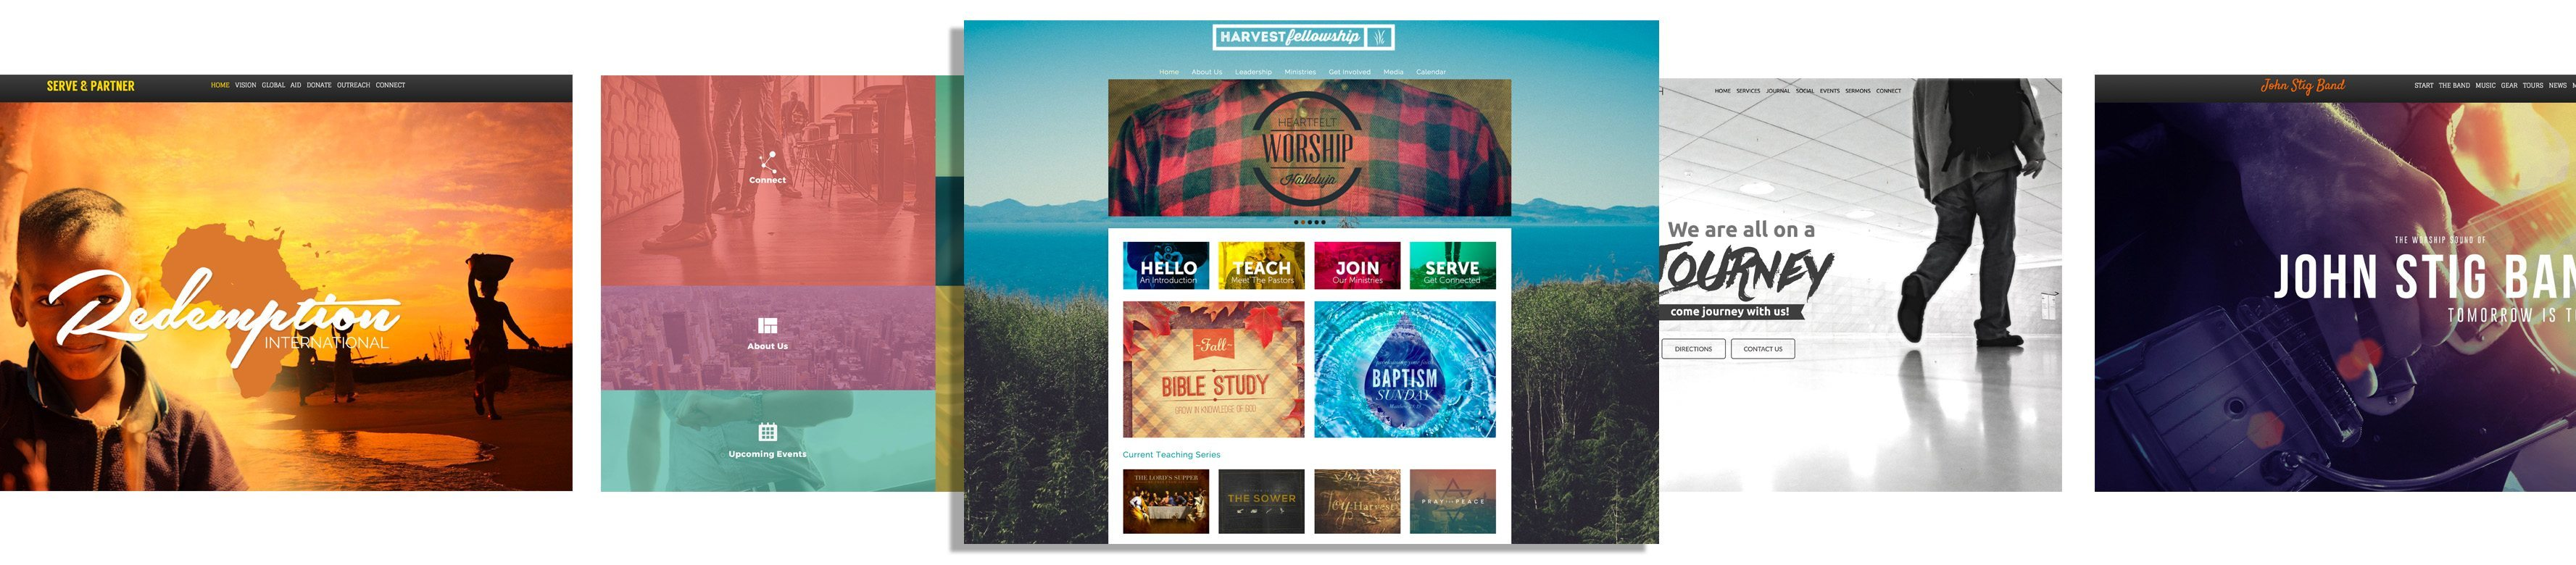 Sharefaith Church Website Templates